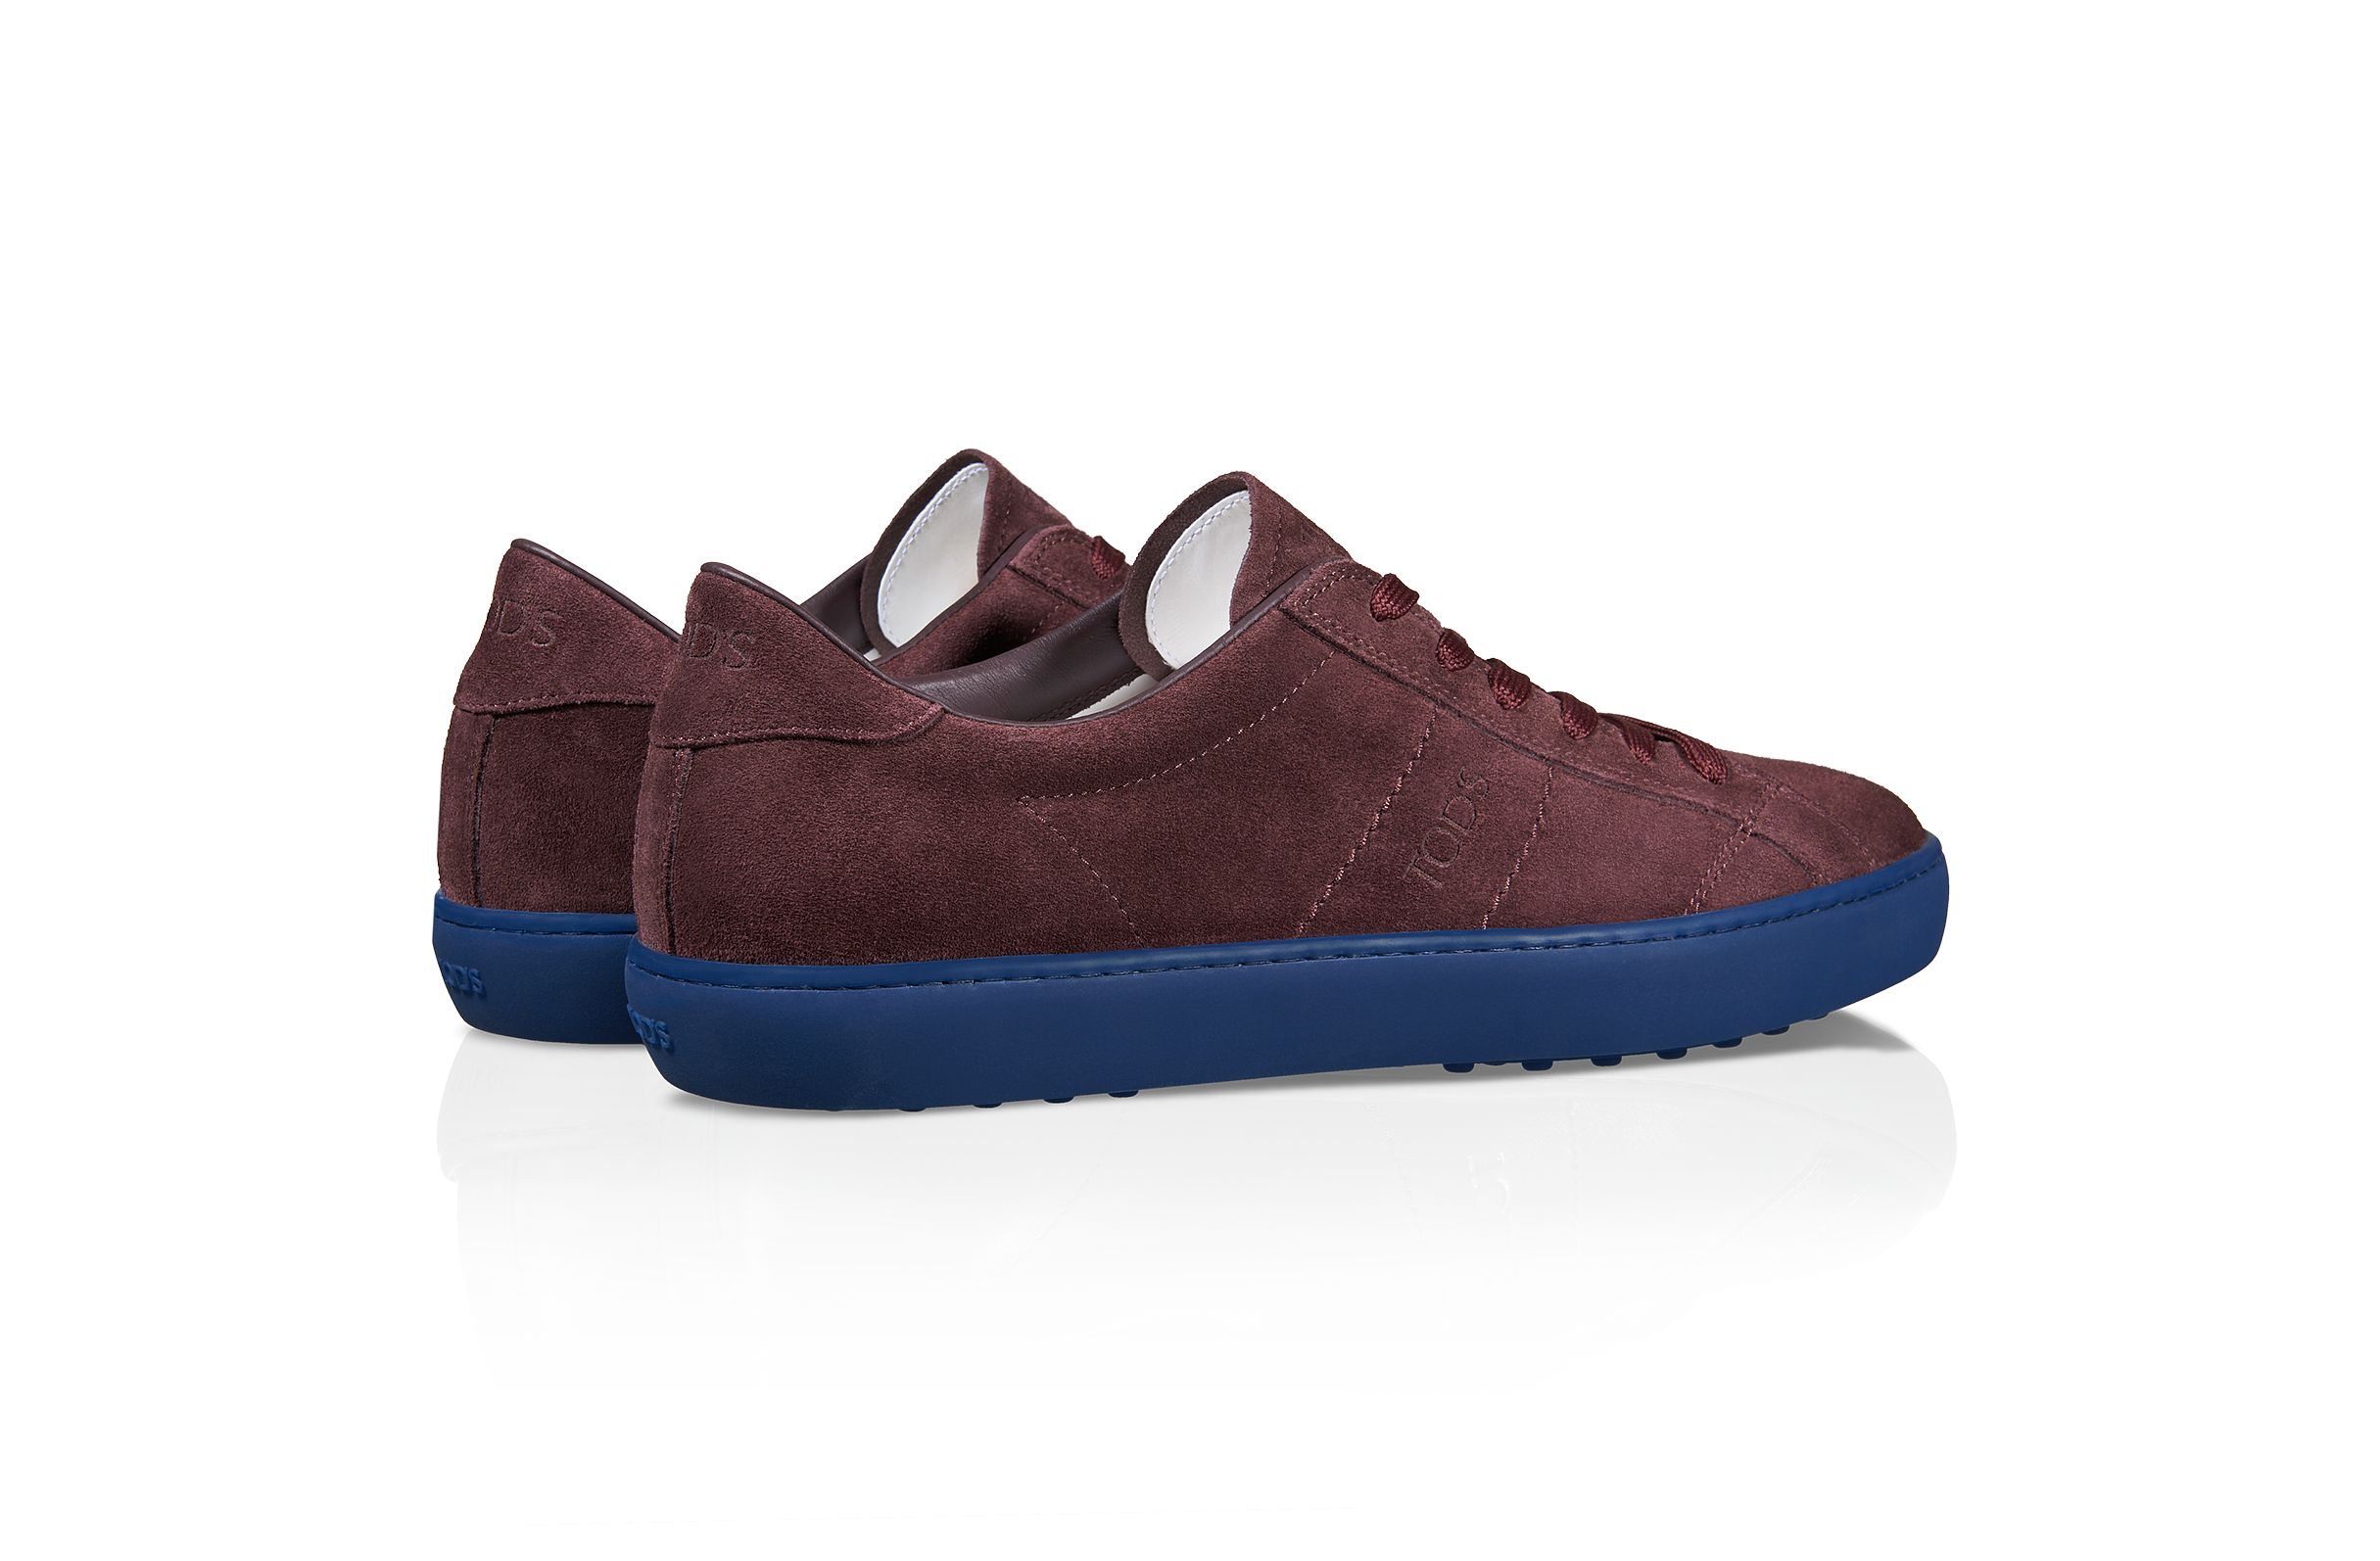 Suede Sneakers XXM0UN0L790RE0R807, Sneakers, Shoes, Spring-Summer, Shop Man - Tod's